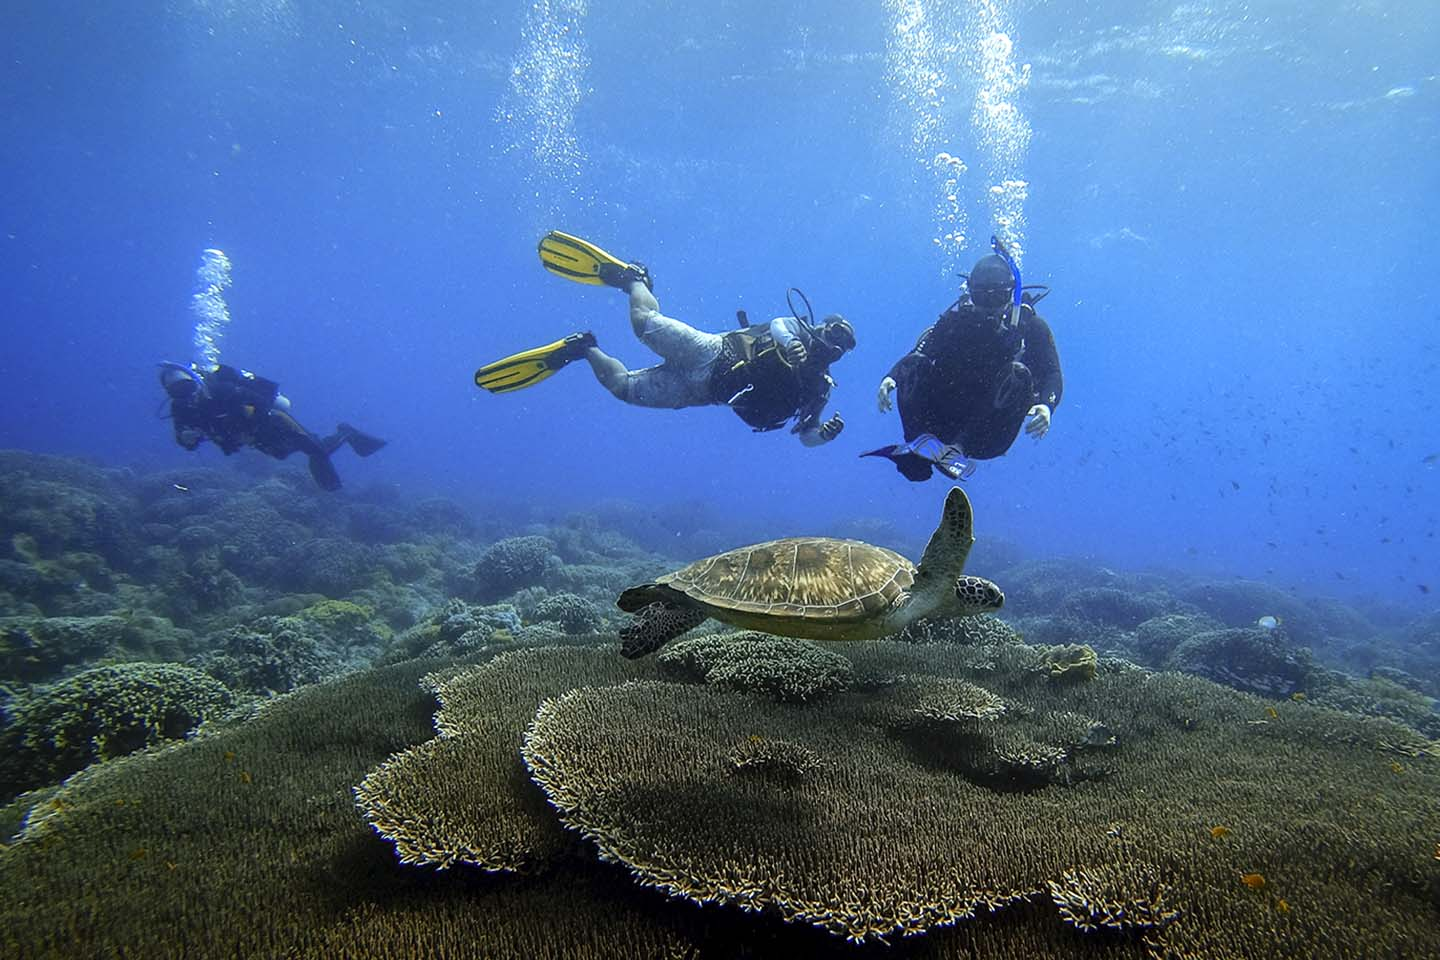 Scuba diving with turtles in Apo Island.